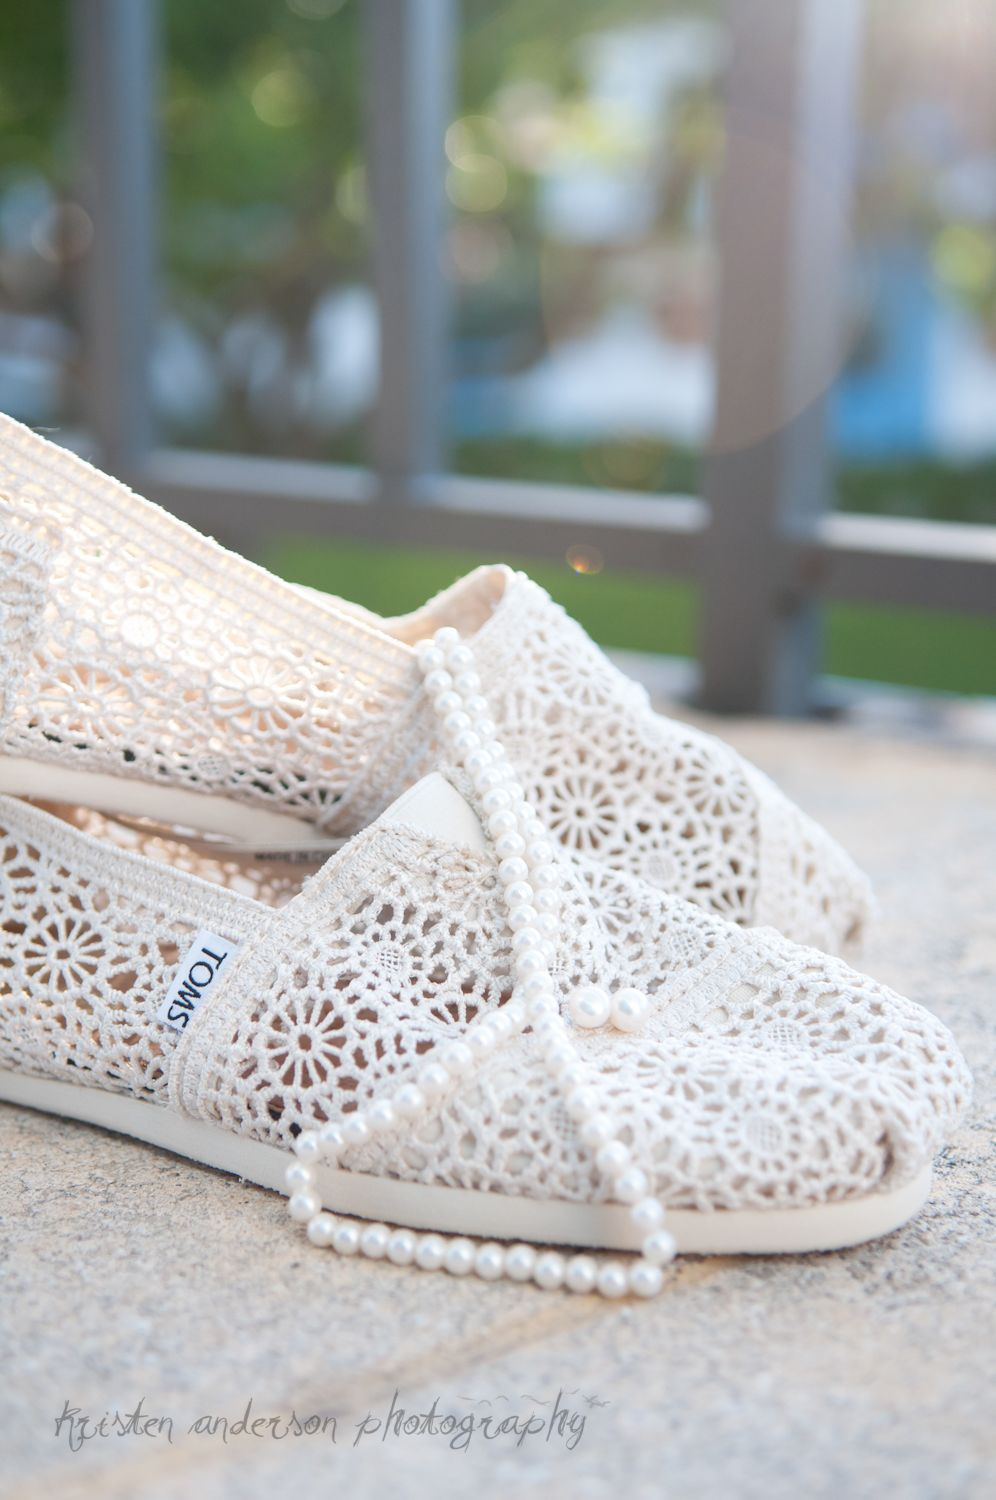 Toms One For One Toms Wedding Shoes Toms Outfits Toms Shoes Outfits